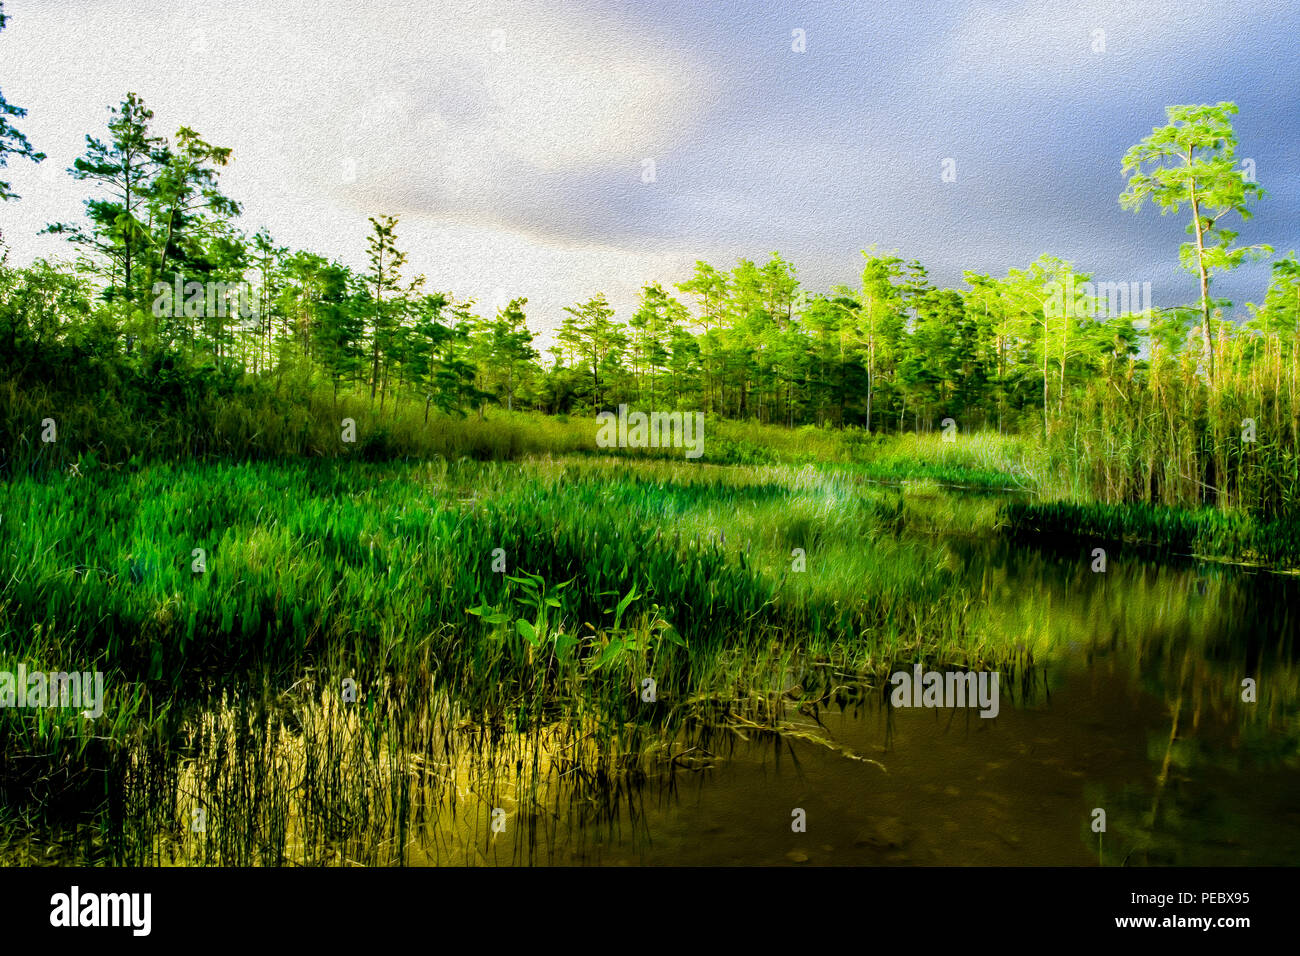 Digital paintings of grasslands during sunset in Florida Everglades - Stock Image